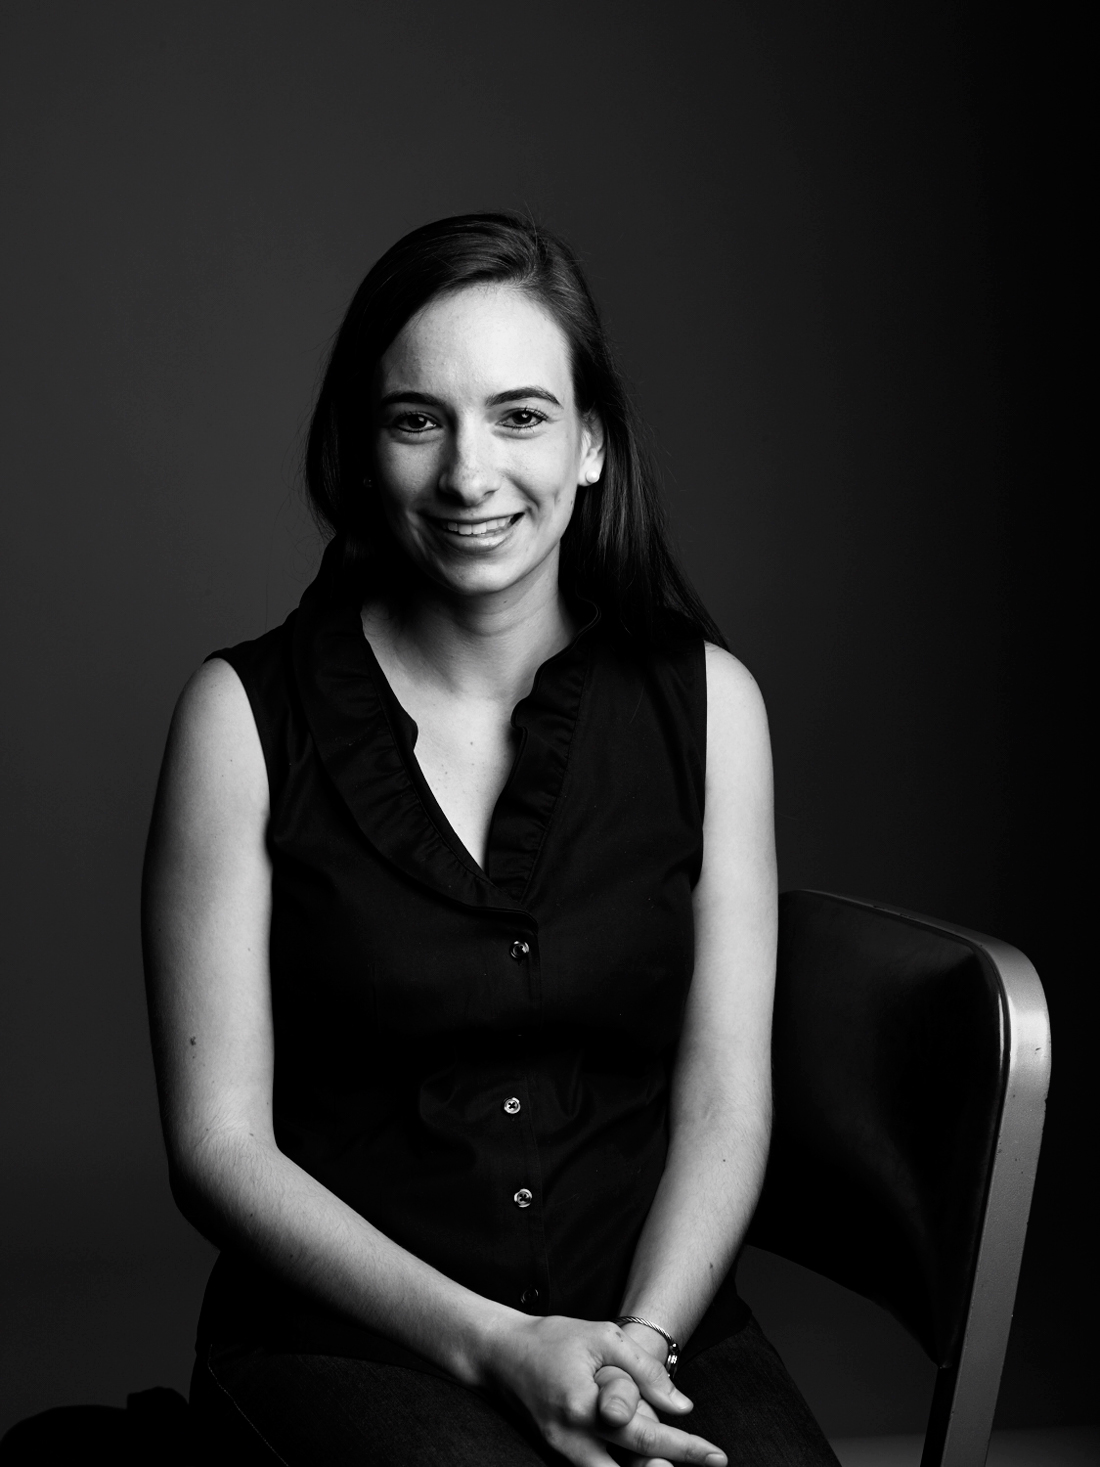 Natalya Brikner is the 29-year-old CEO of Accion Systems.